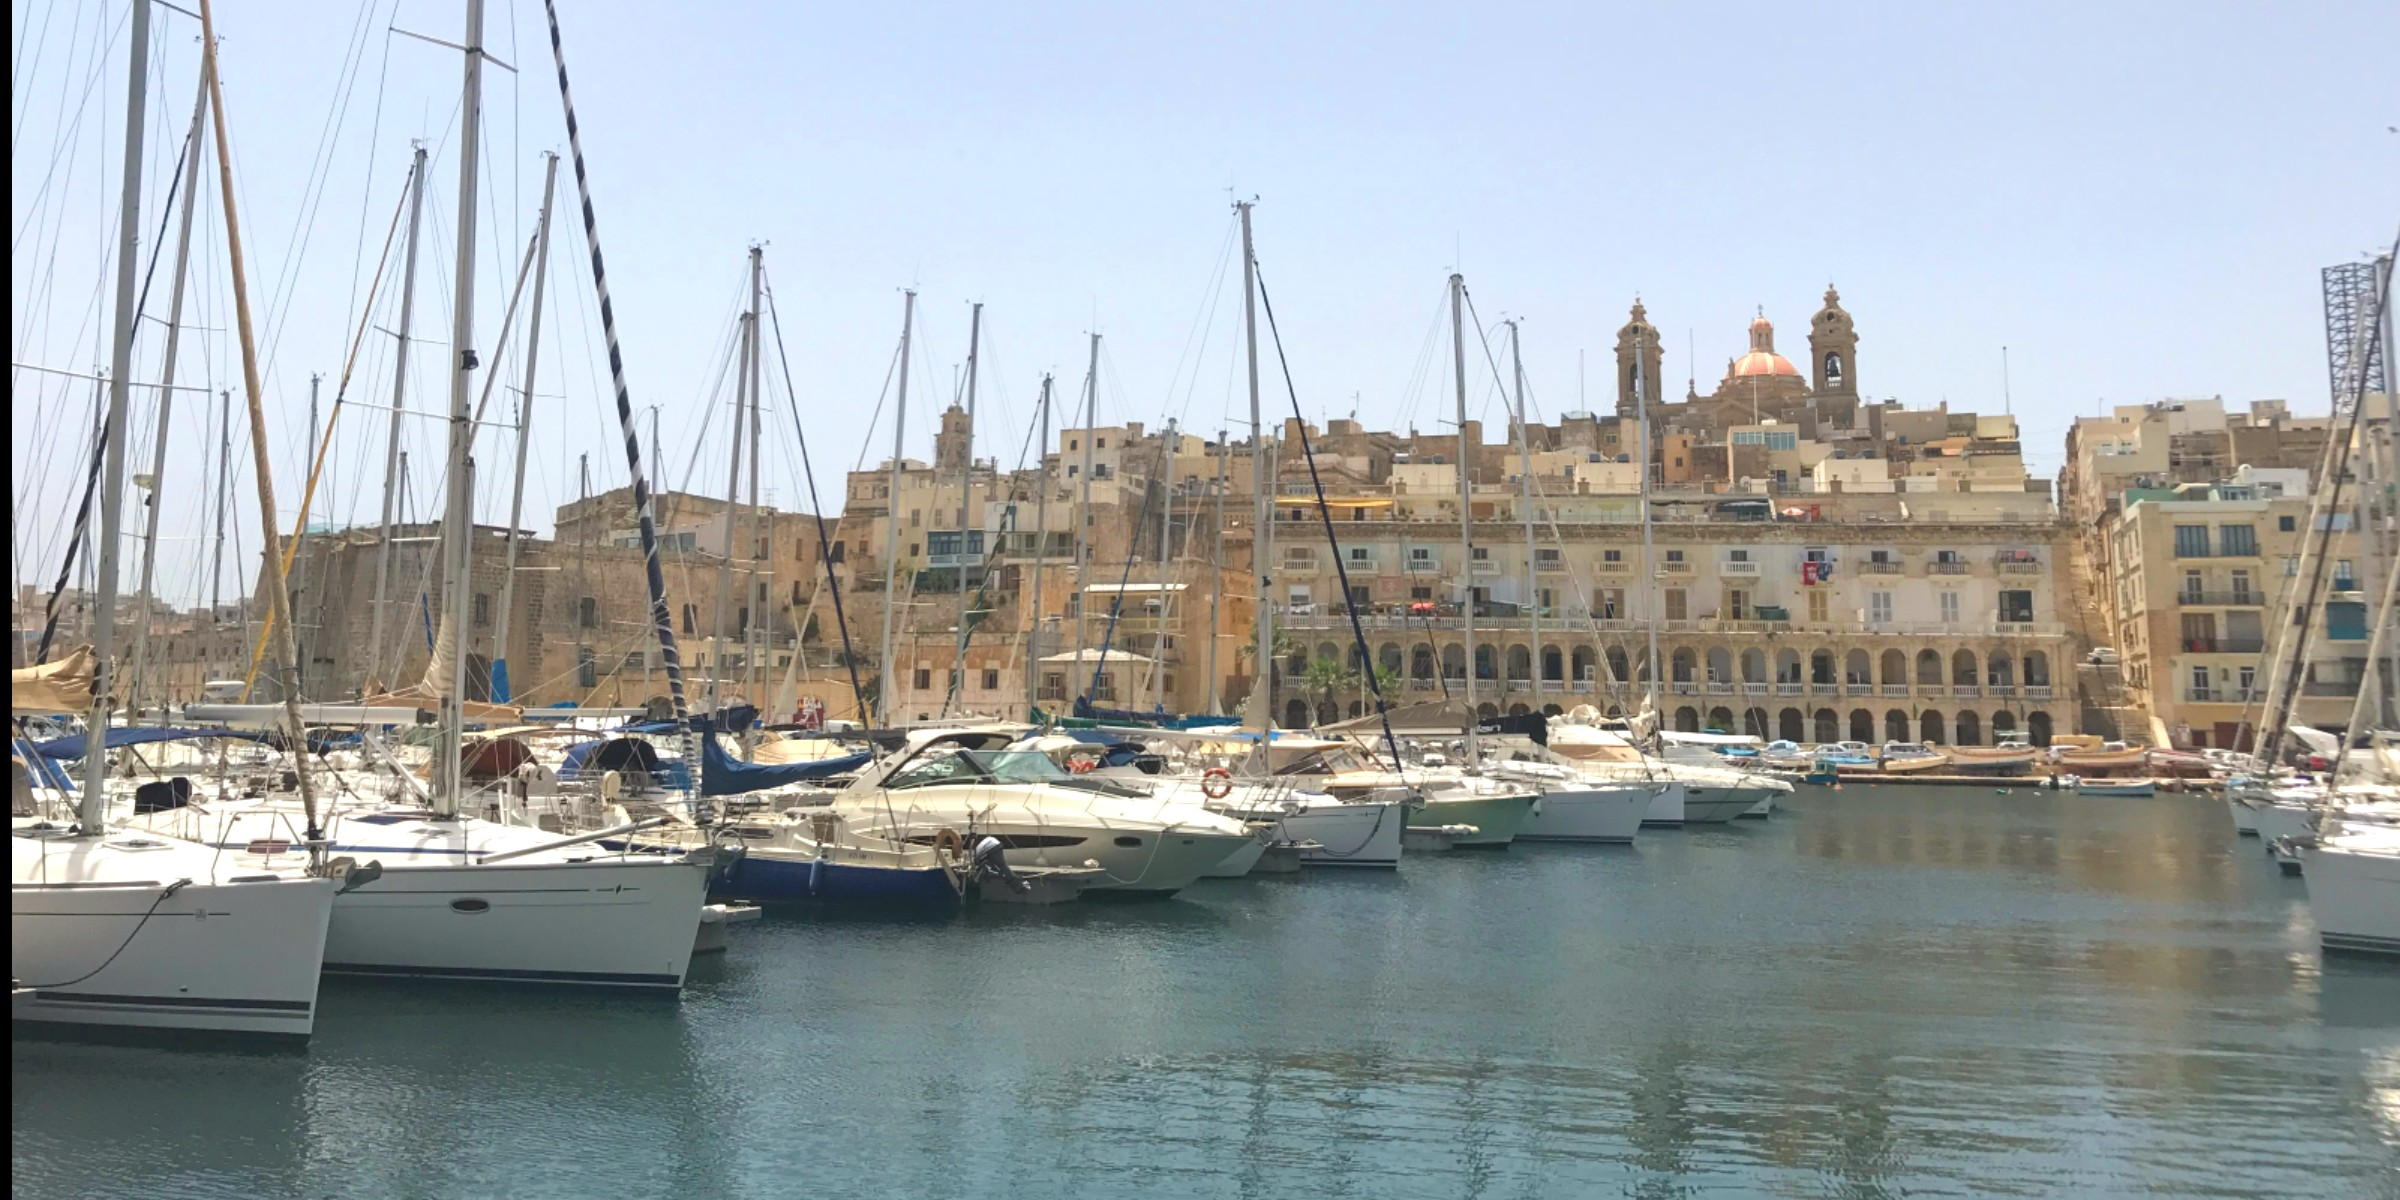 Birgu, also known as Città Vittoriosa